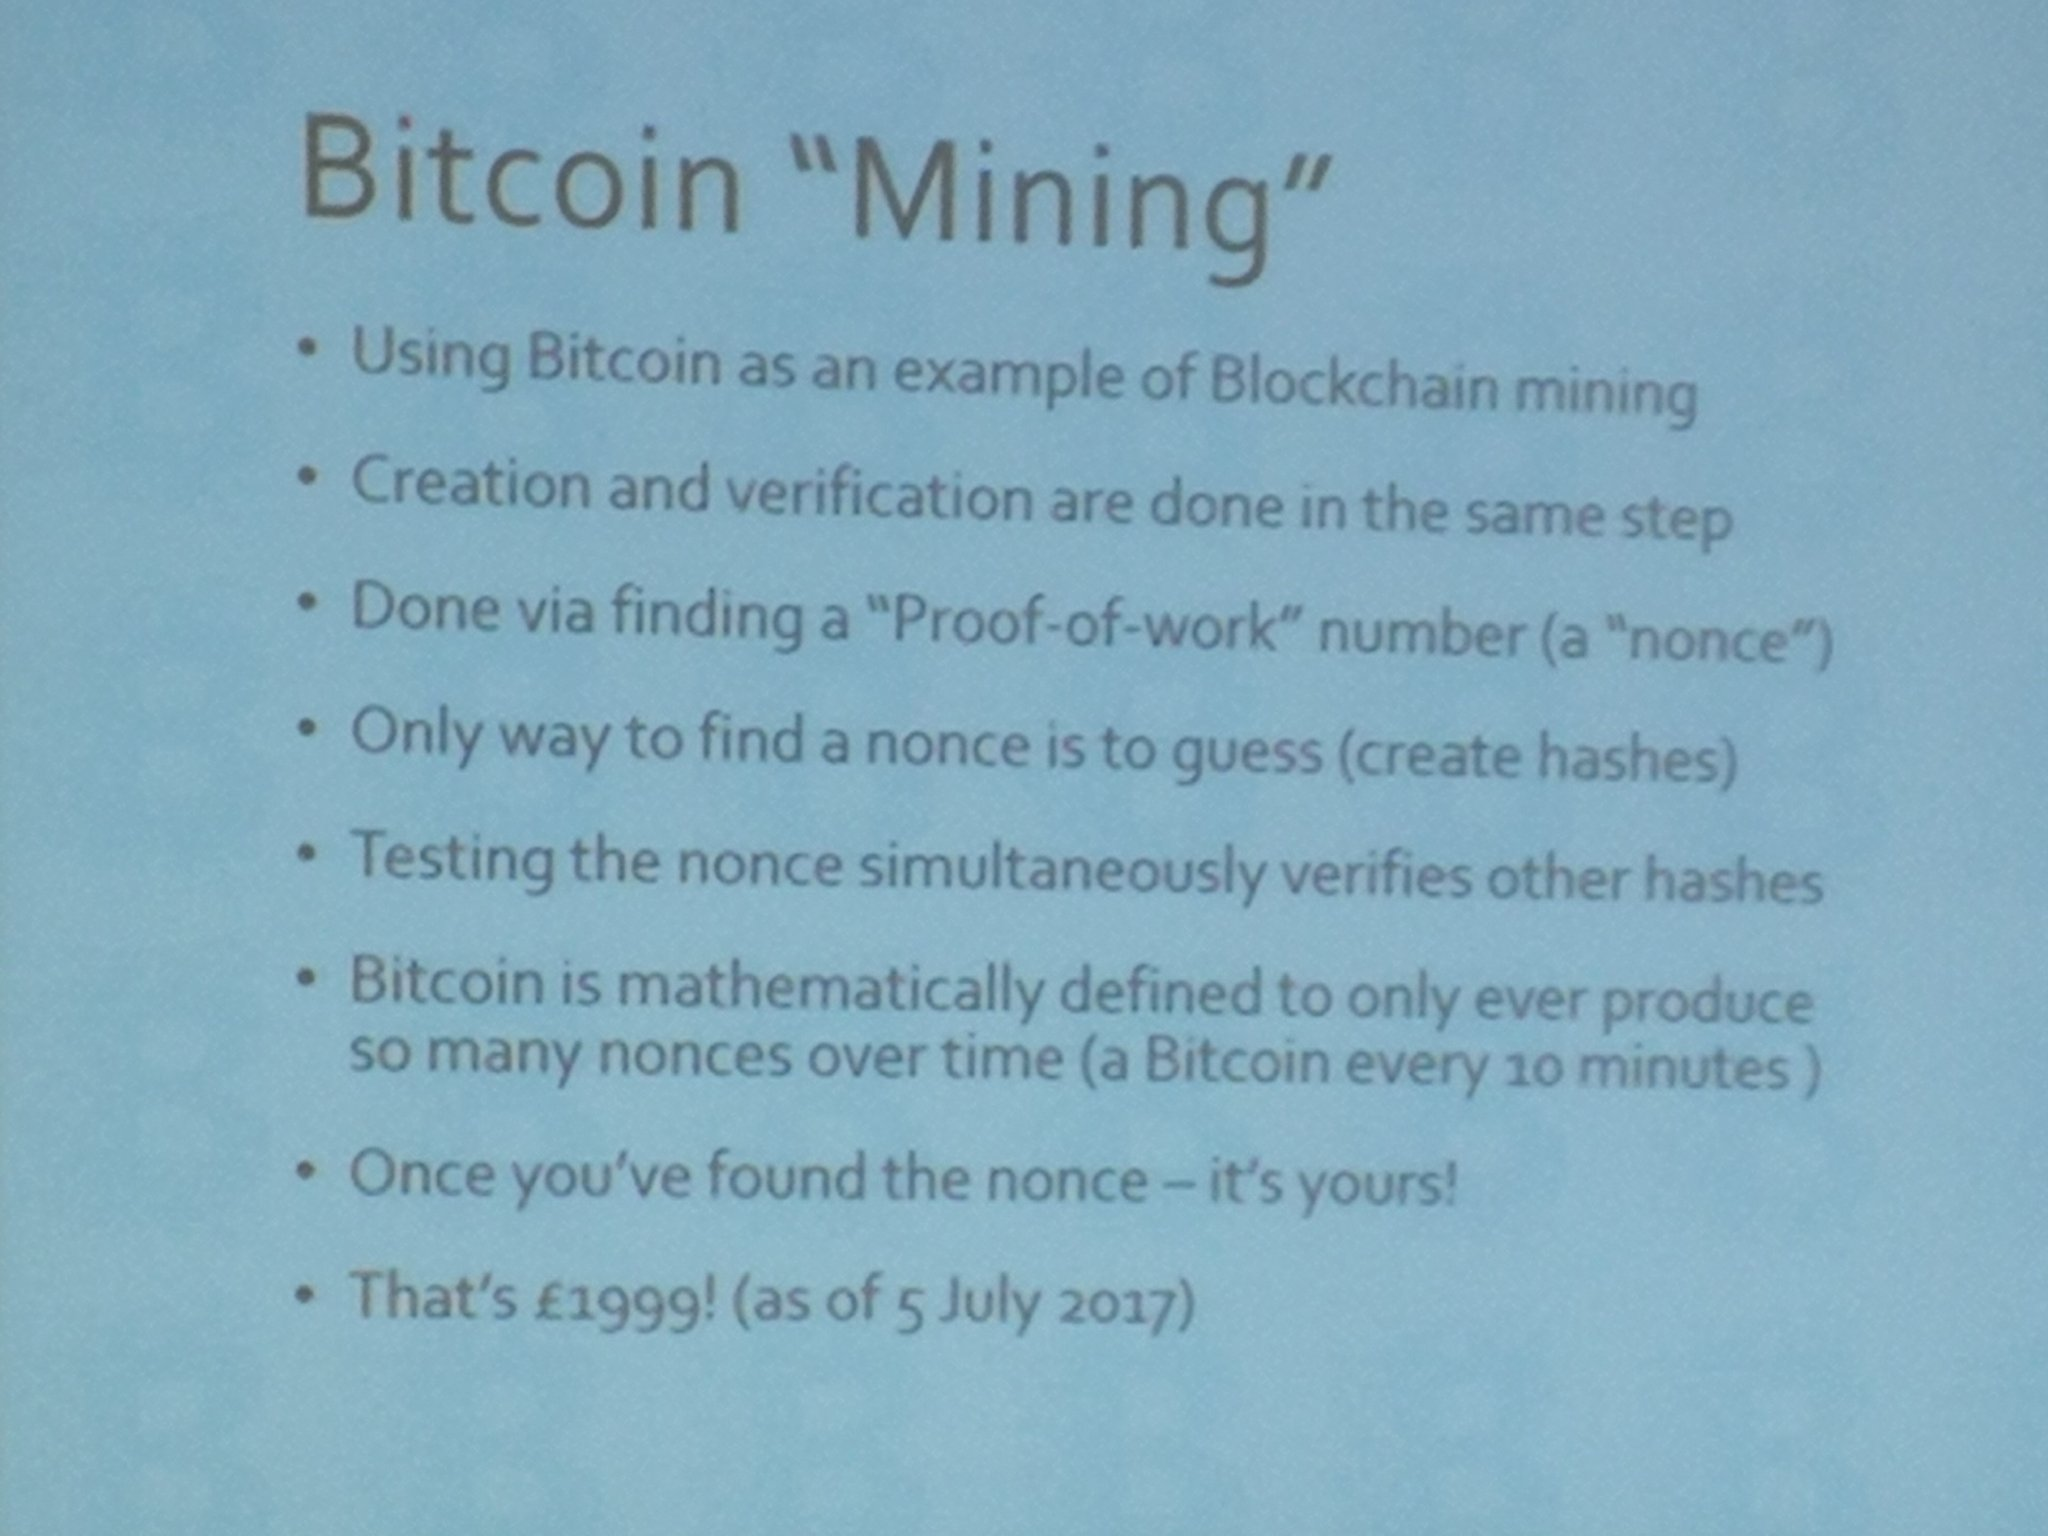 To create a #bitcoin you have to verify everyone else's bitcoins - done in same step #blockchain #netikx86 https://t.co/6gMlNFzfE5